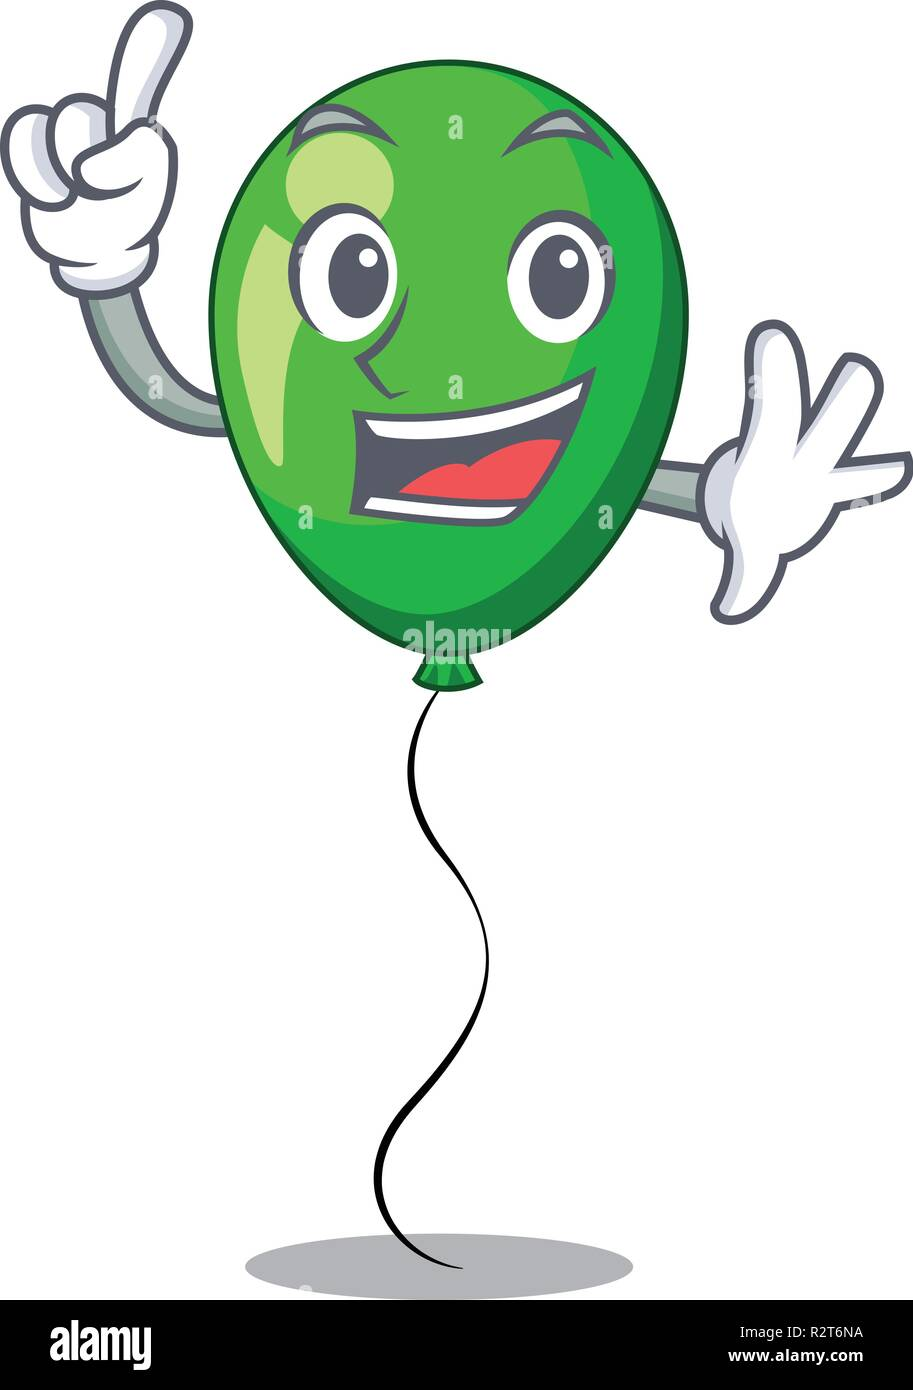 Finger green balloon on character plastic stick - Stock Vector